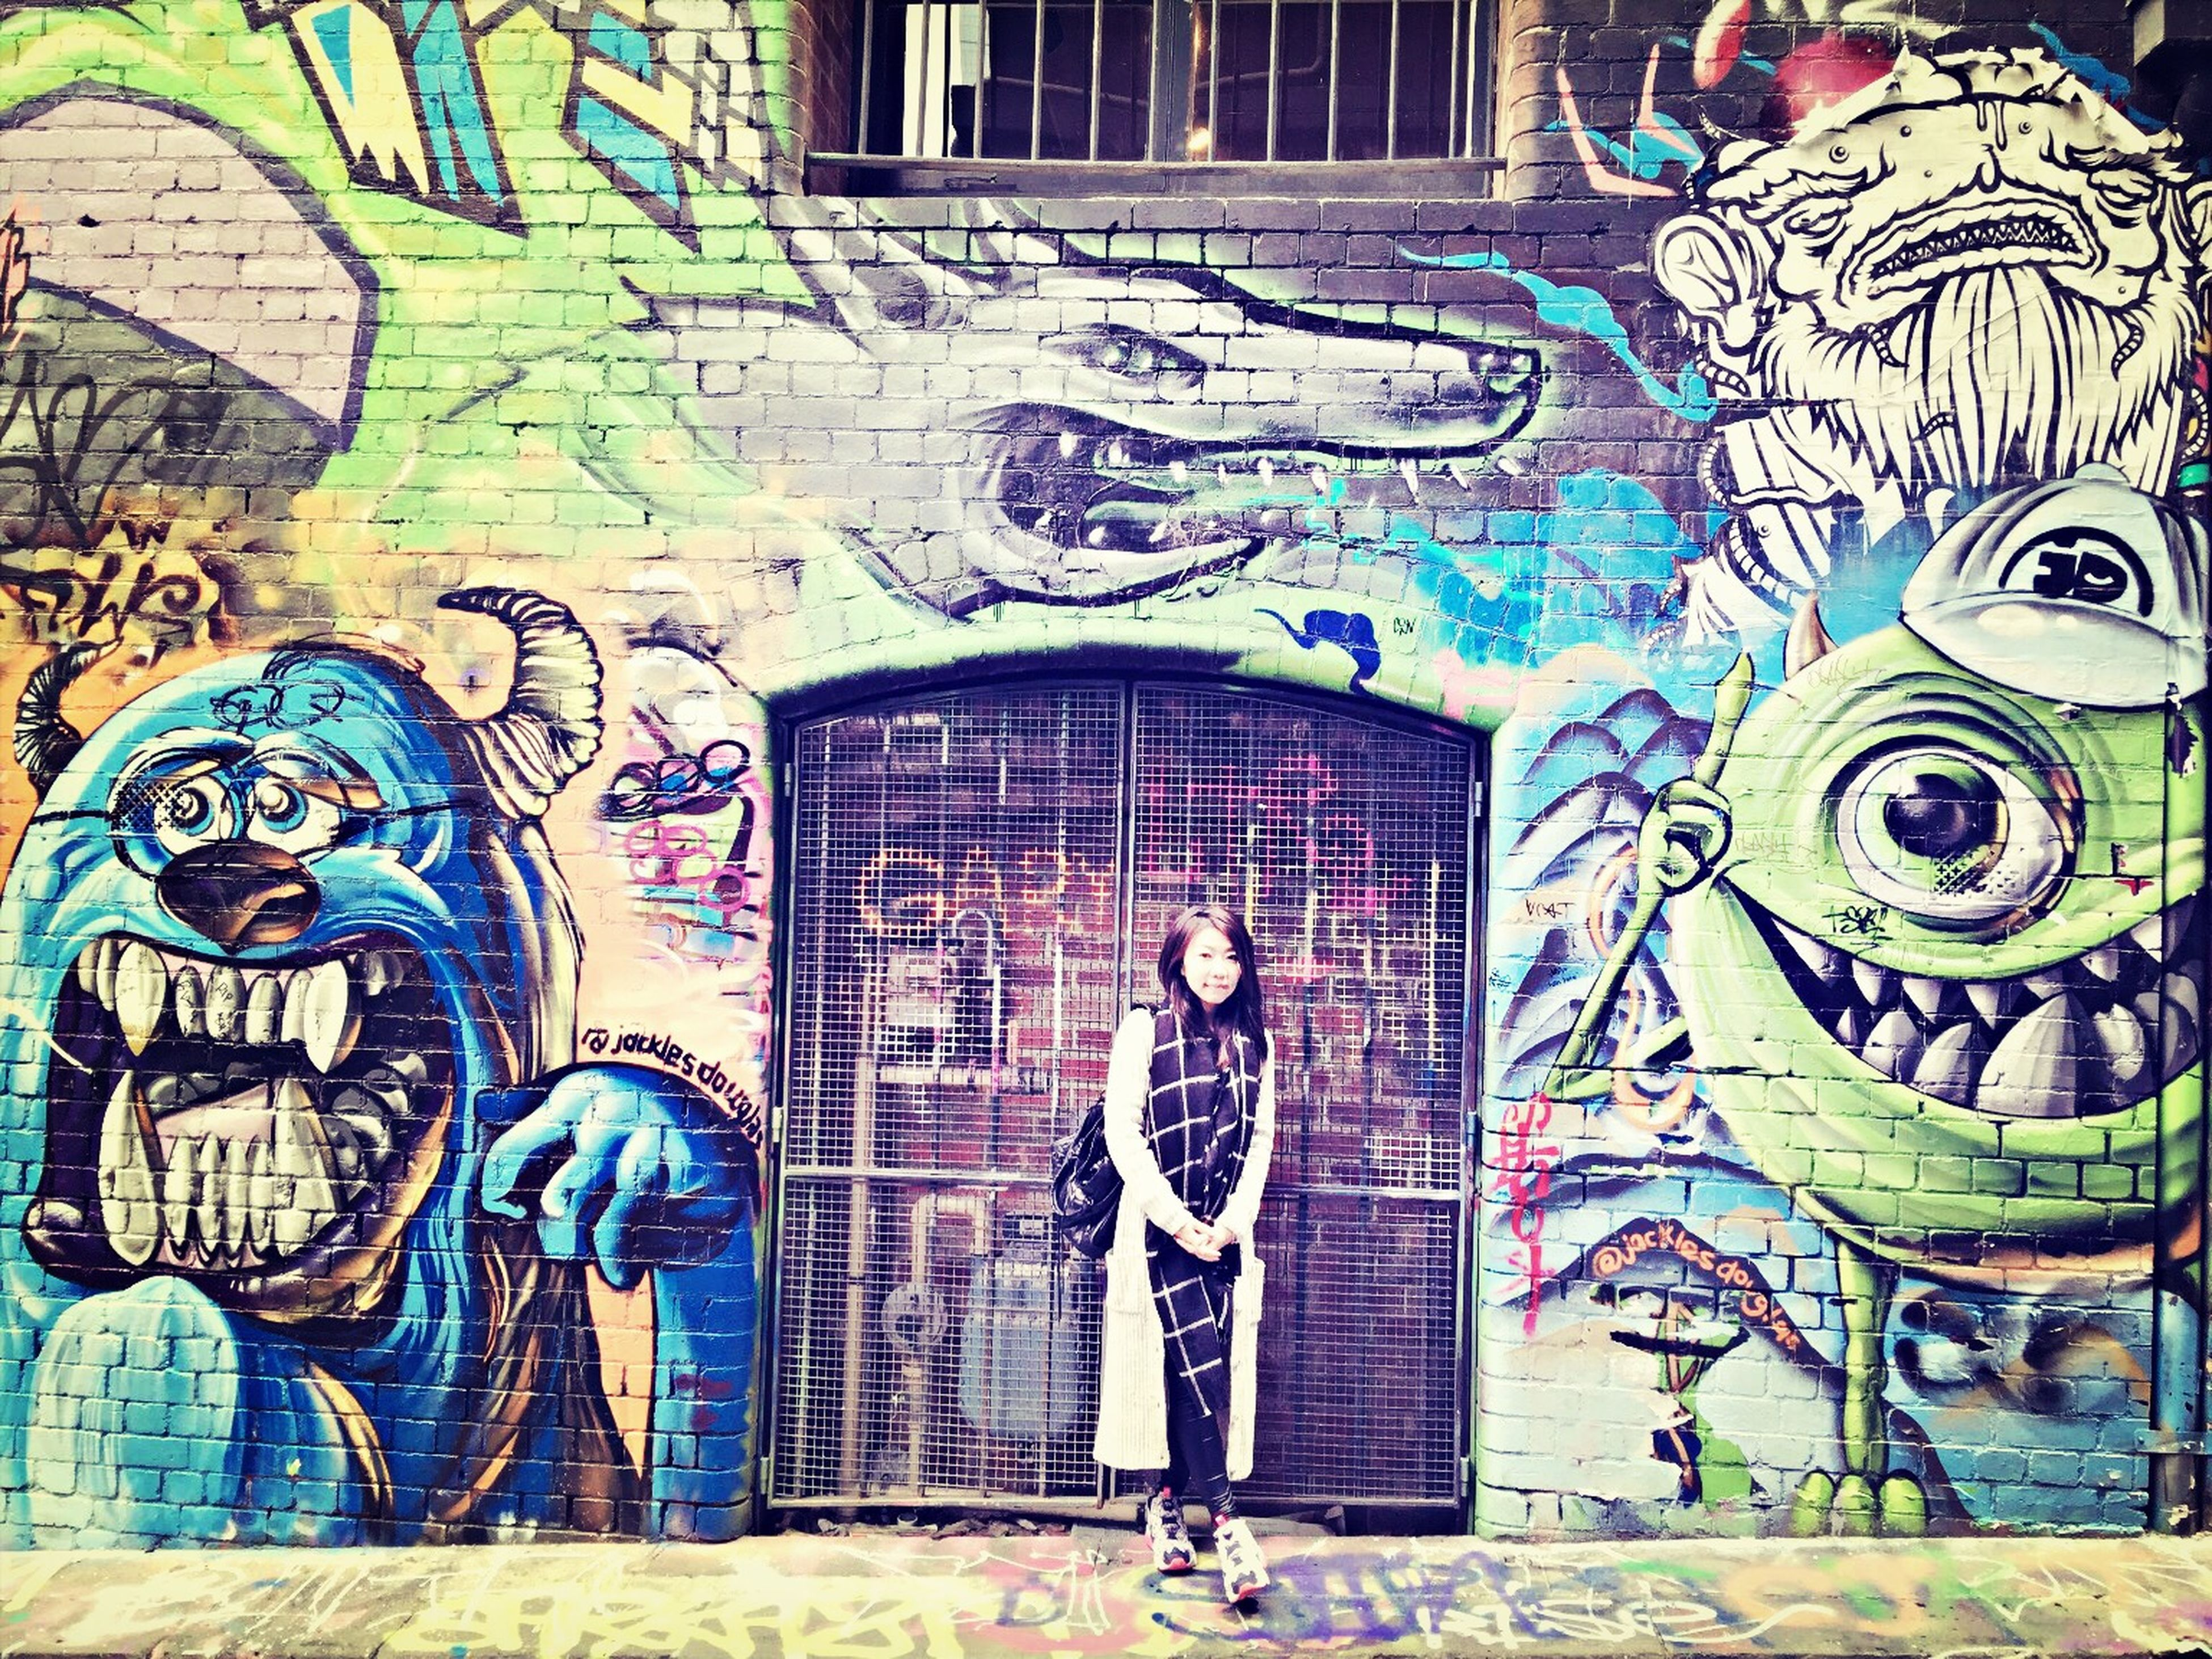 graffiti, art and craft, art, architecture, creativity, built structure, building exterior, wall - building feature, multi colored, mural, street art, pattern, wall, human representation, design, building, painting, outdoors, day, window